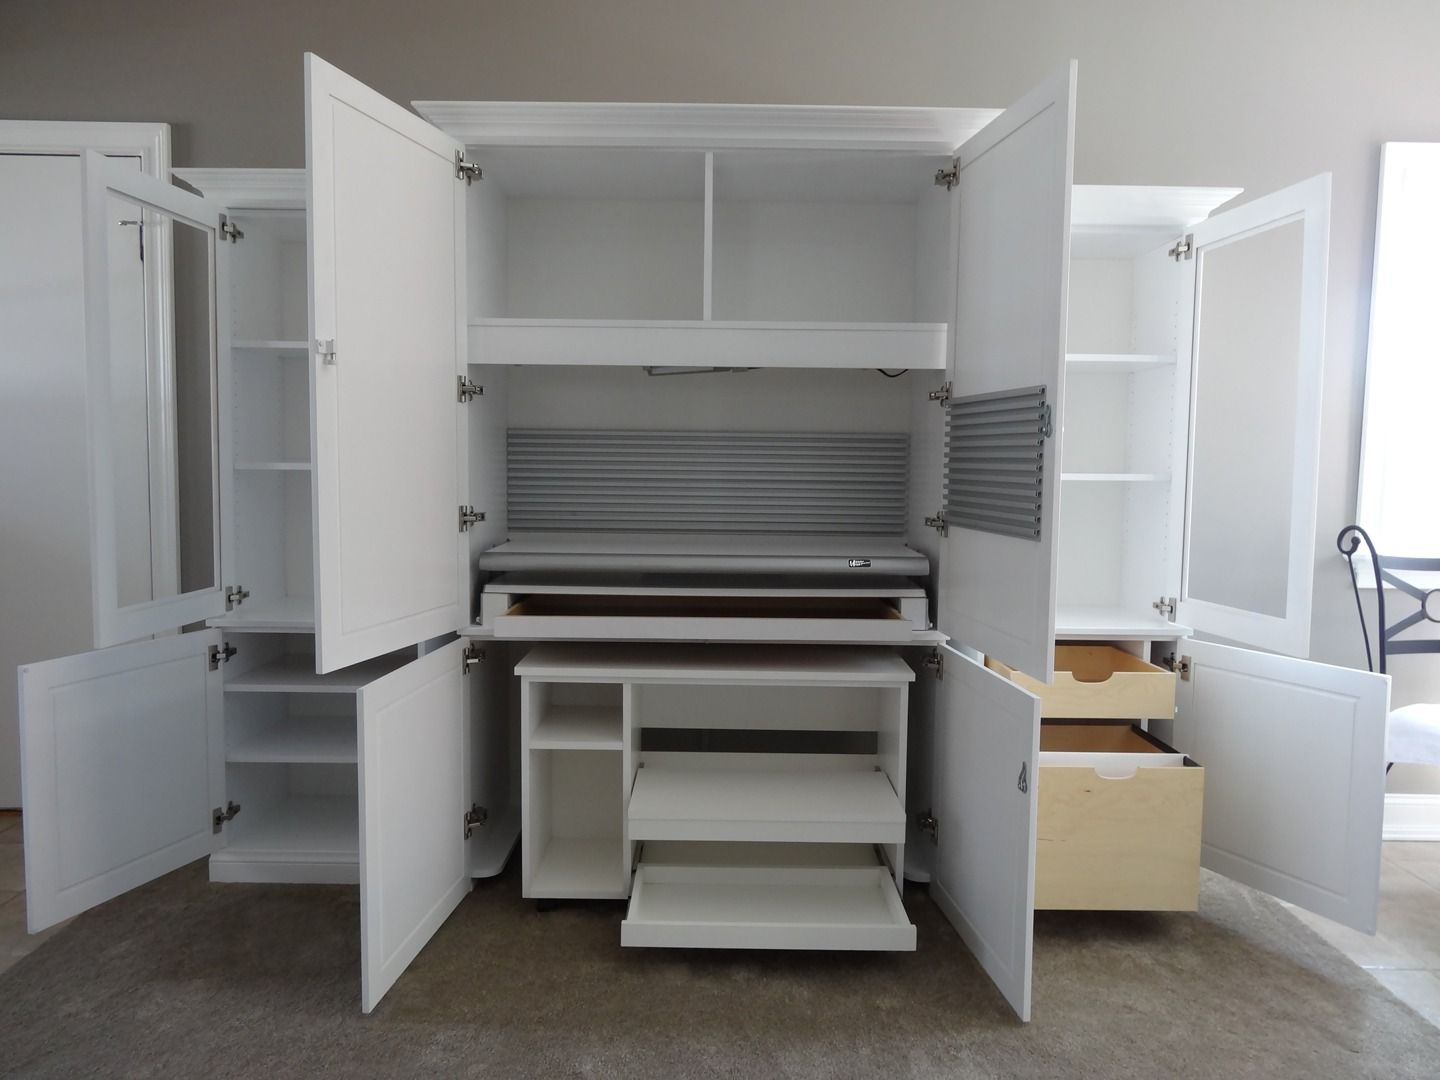 Design Your Own Hobby Hideaway Craft Storage Cabinet To Meet Your Own  Specific